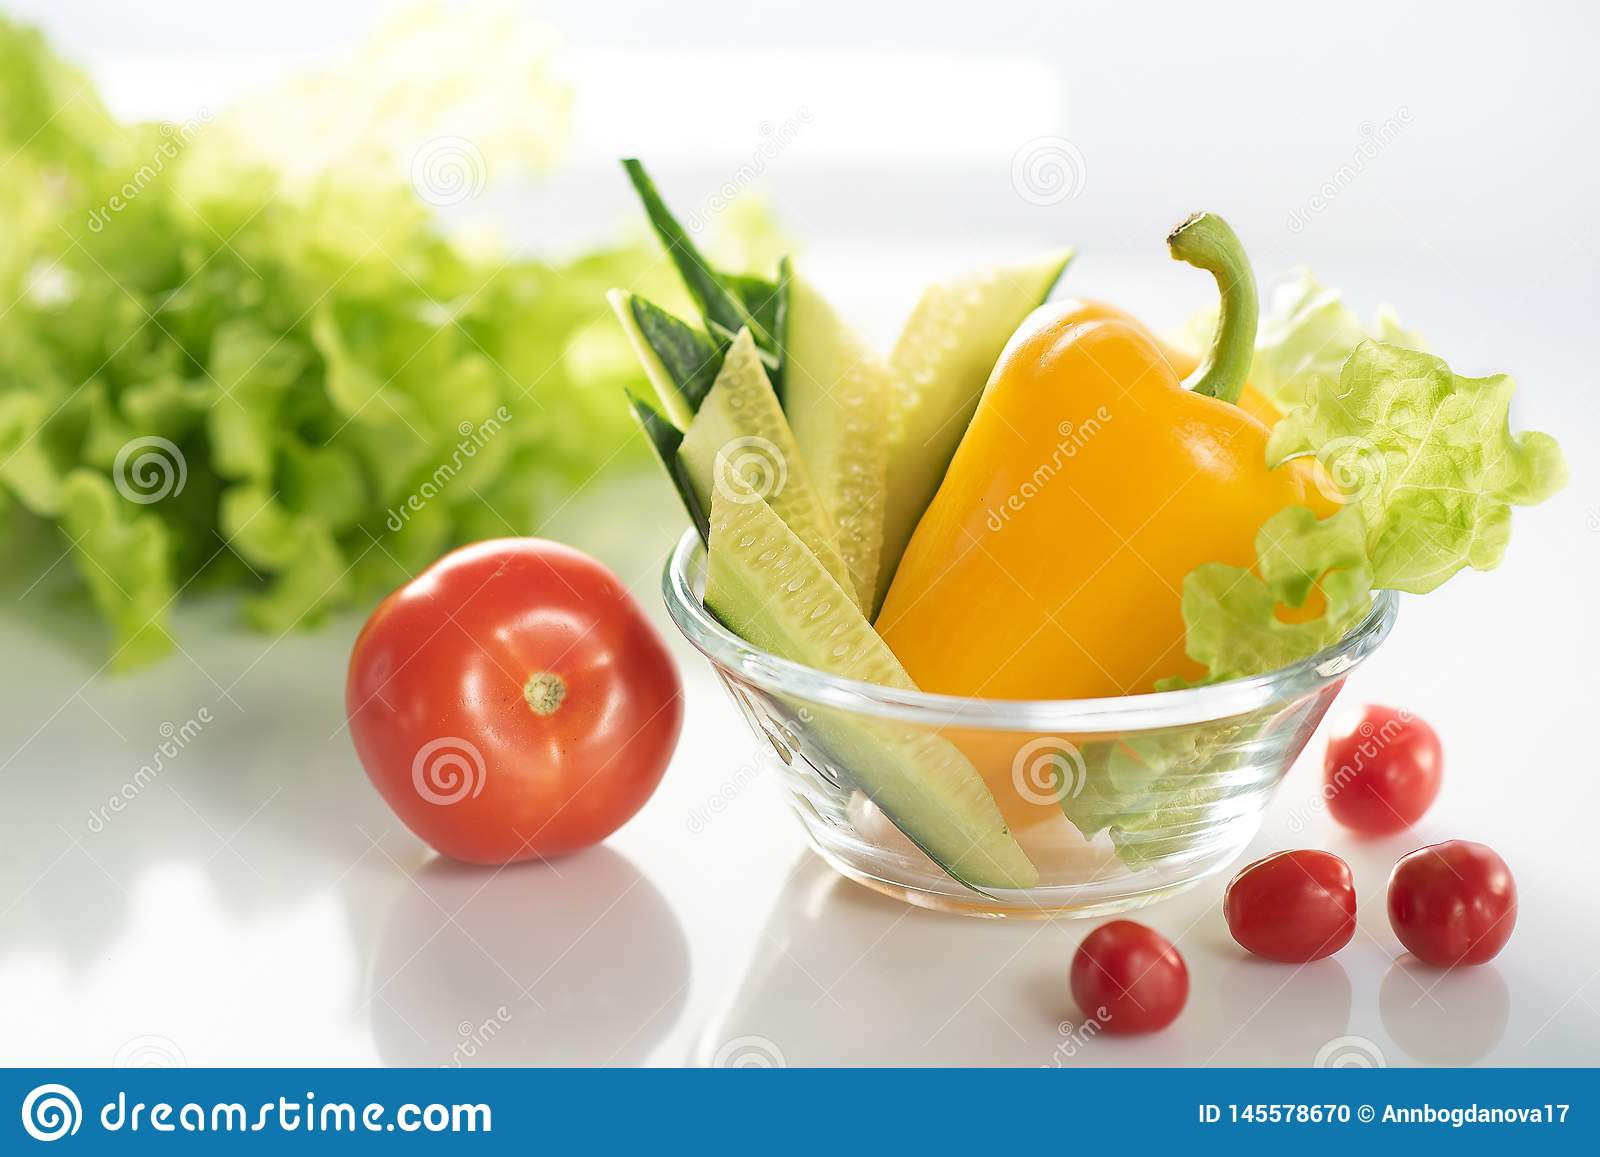 A set of fresh vegetables on a white plate, for the preparation of vegetable vegetarian salad. The background is white